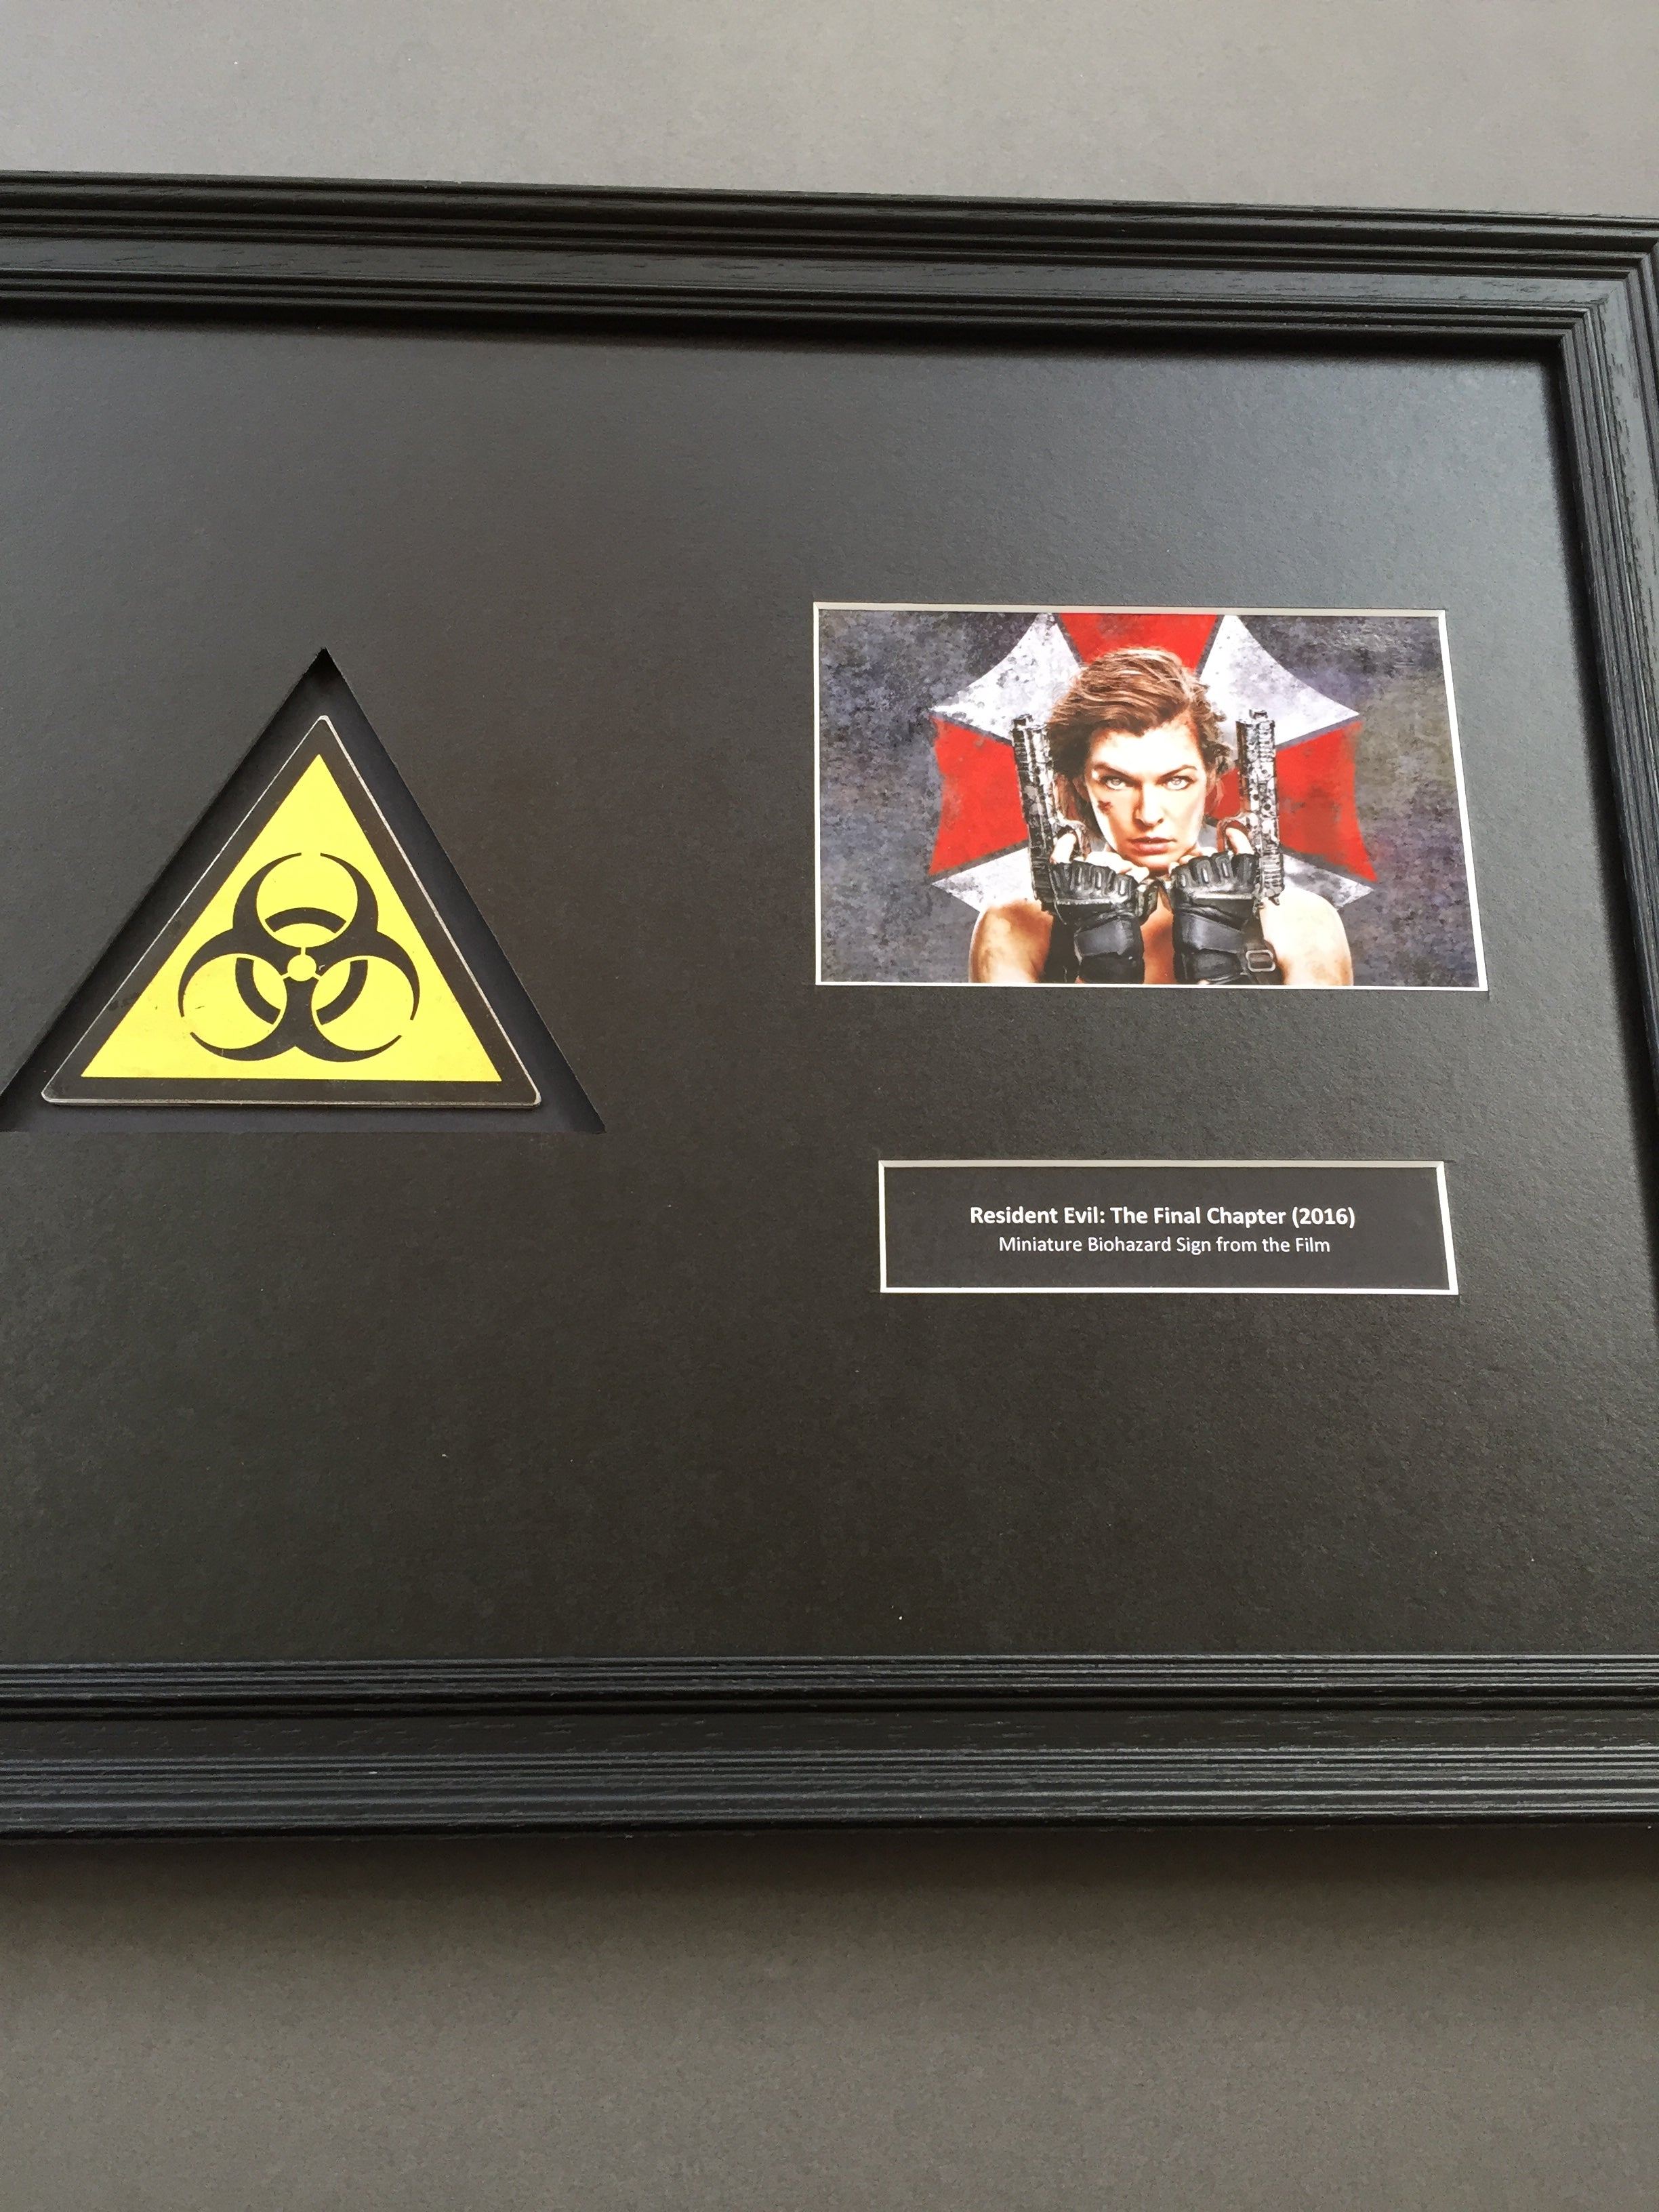 Resident Evil: The Final Chapter (2016) - Framed Biohazard Sign